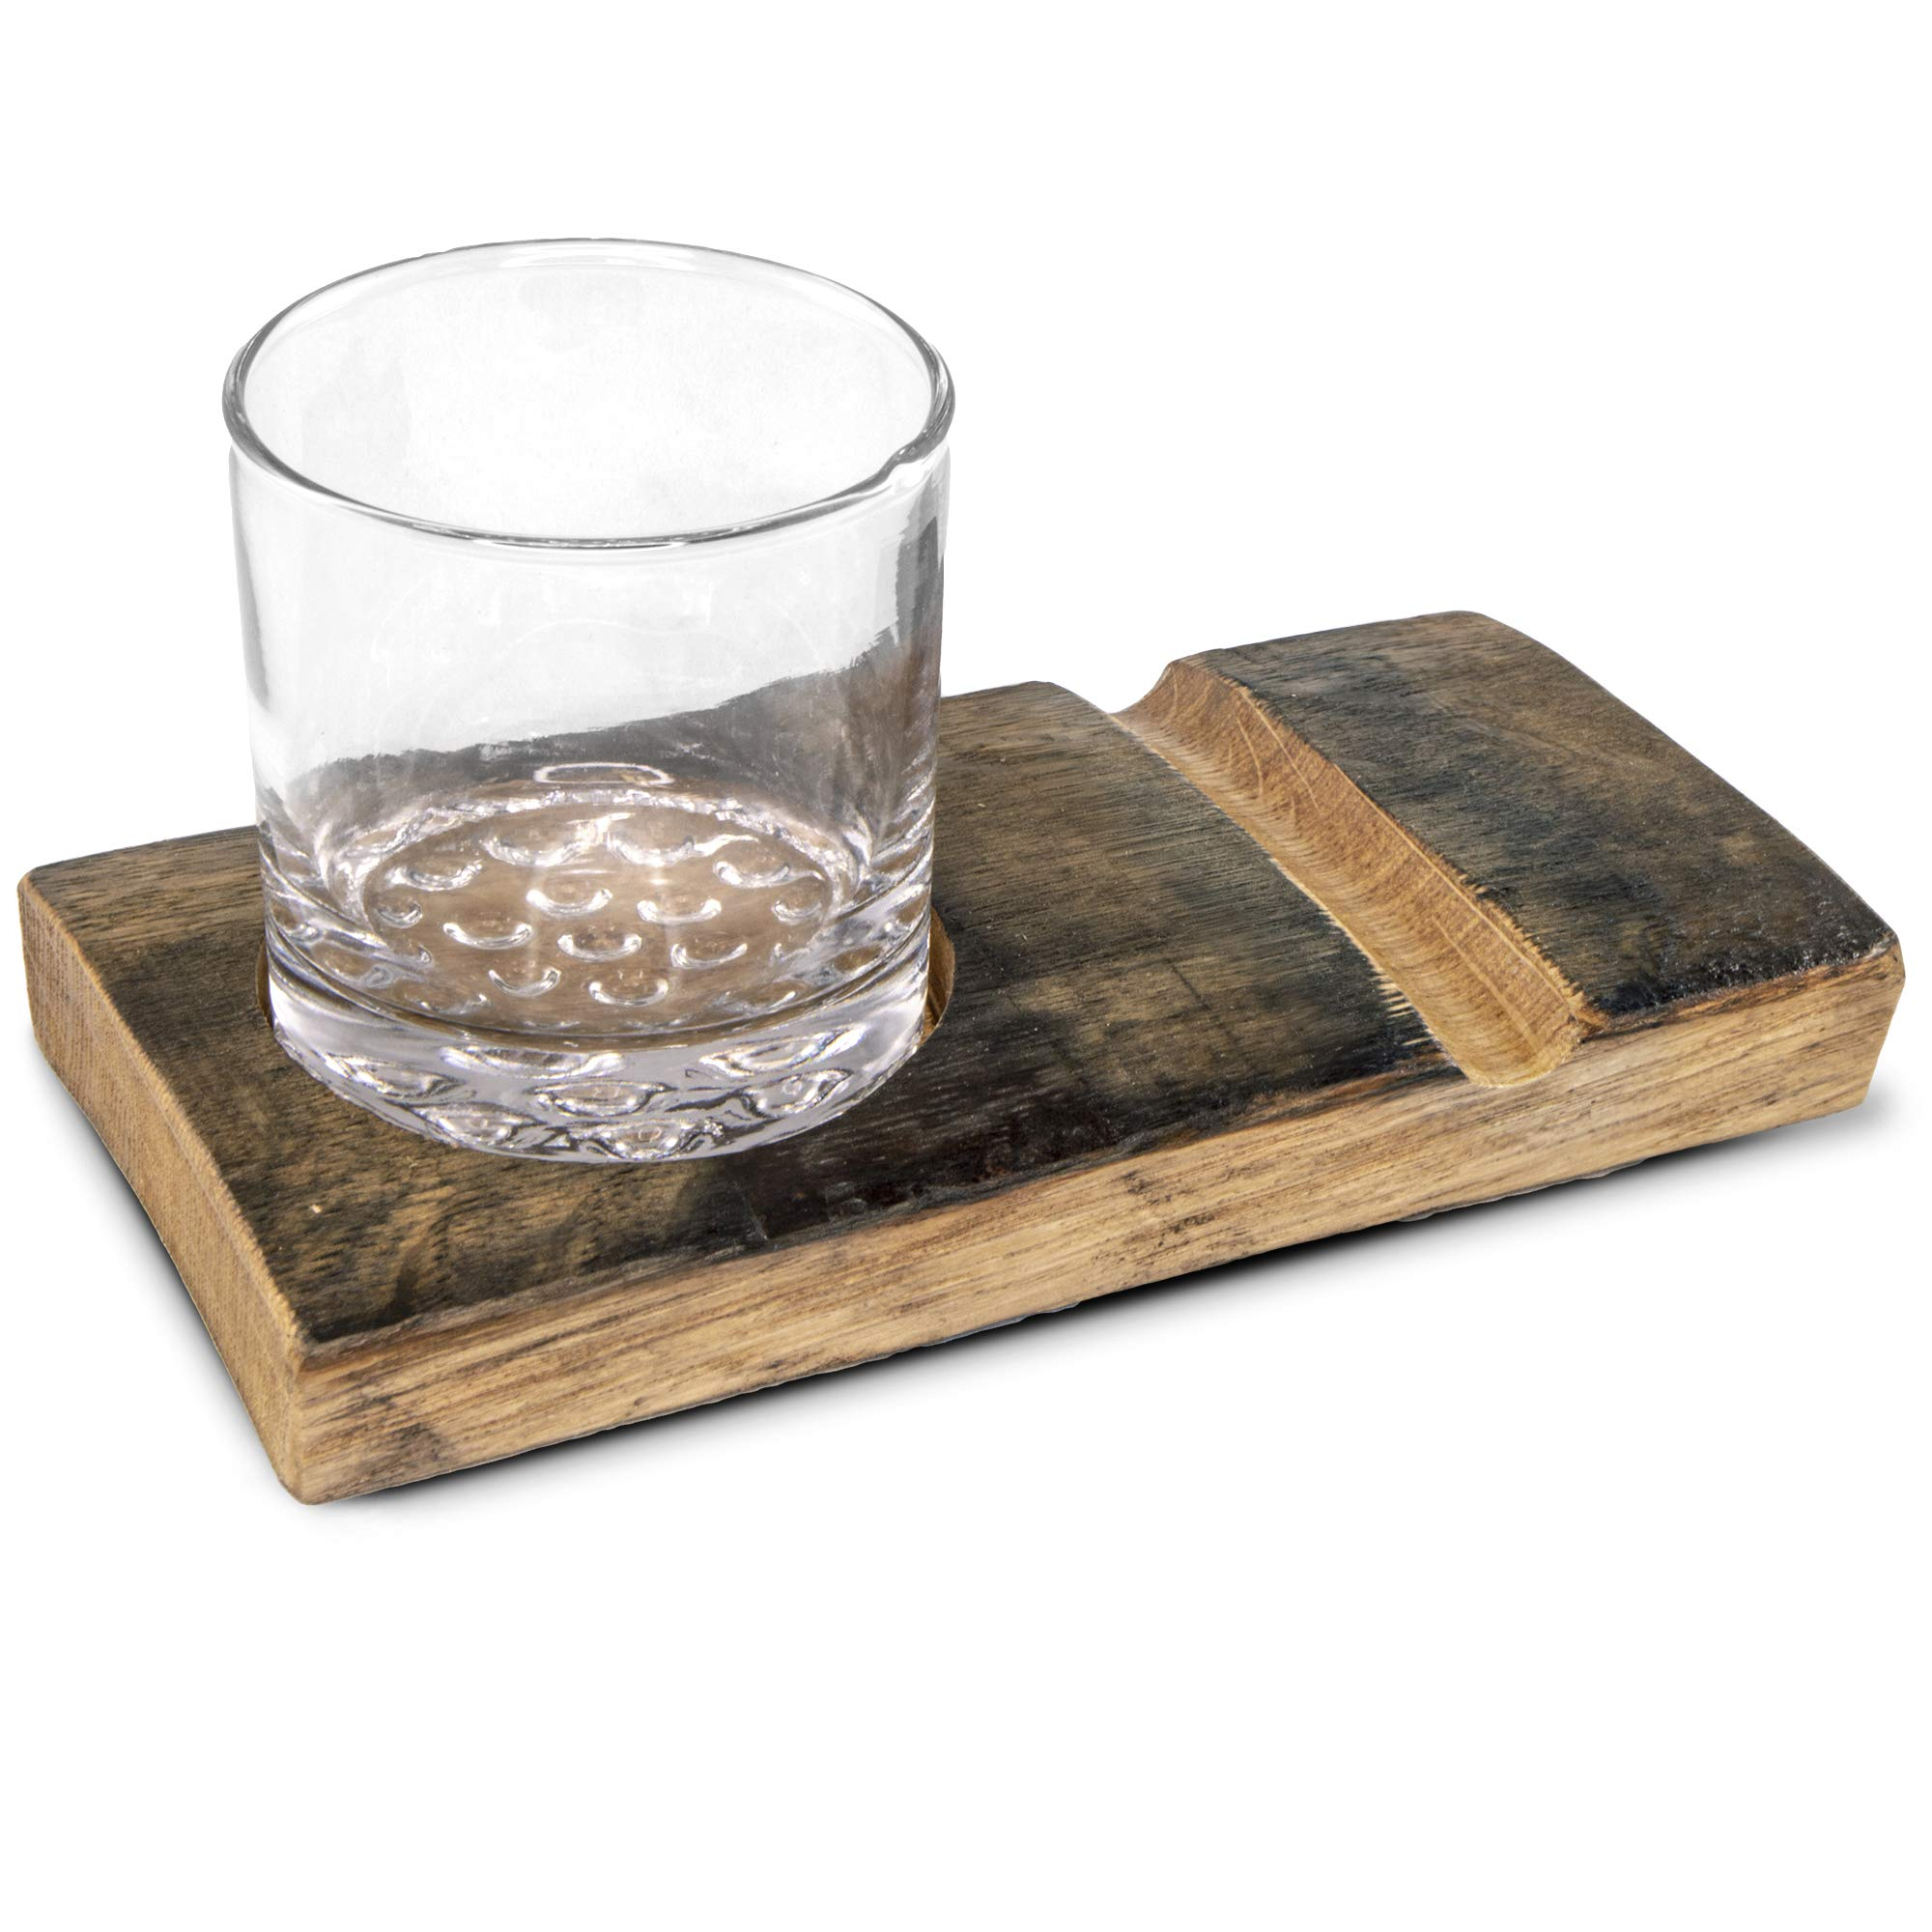 Handcrafted Rustic Wooden Whiskey Glass and Cigar Holder Tray Gift Set with Carved Wood Board and Highball Glass by BRIAR AND OAK WWW.BRIARANDOAK.COM (Image #1)